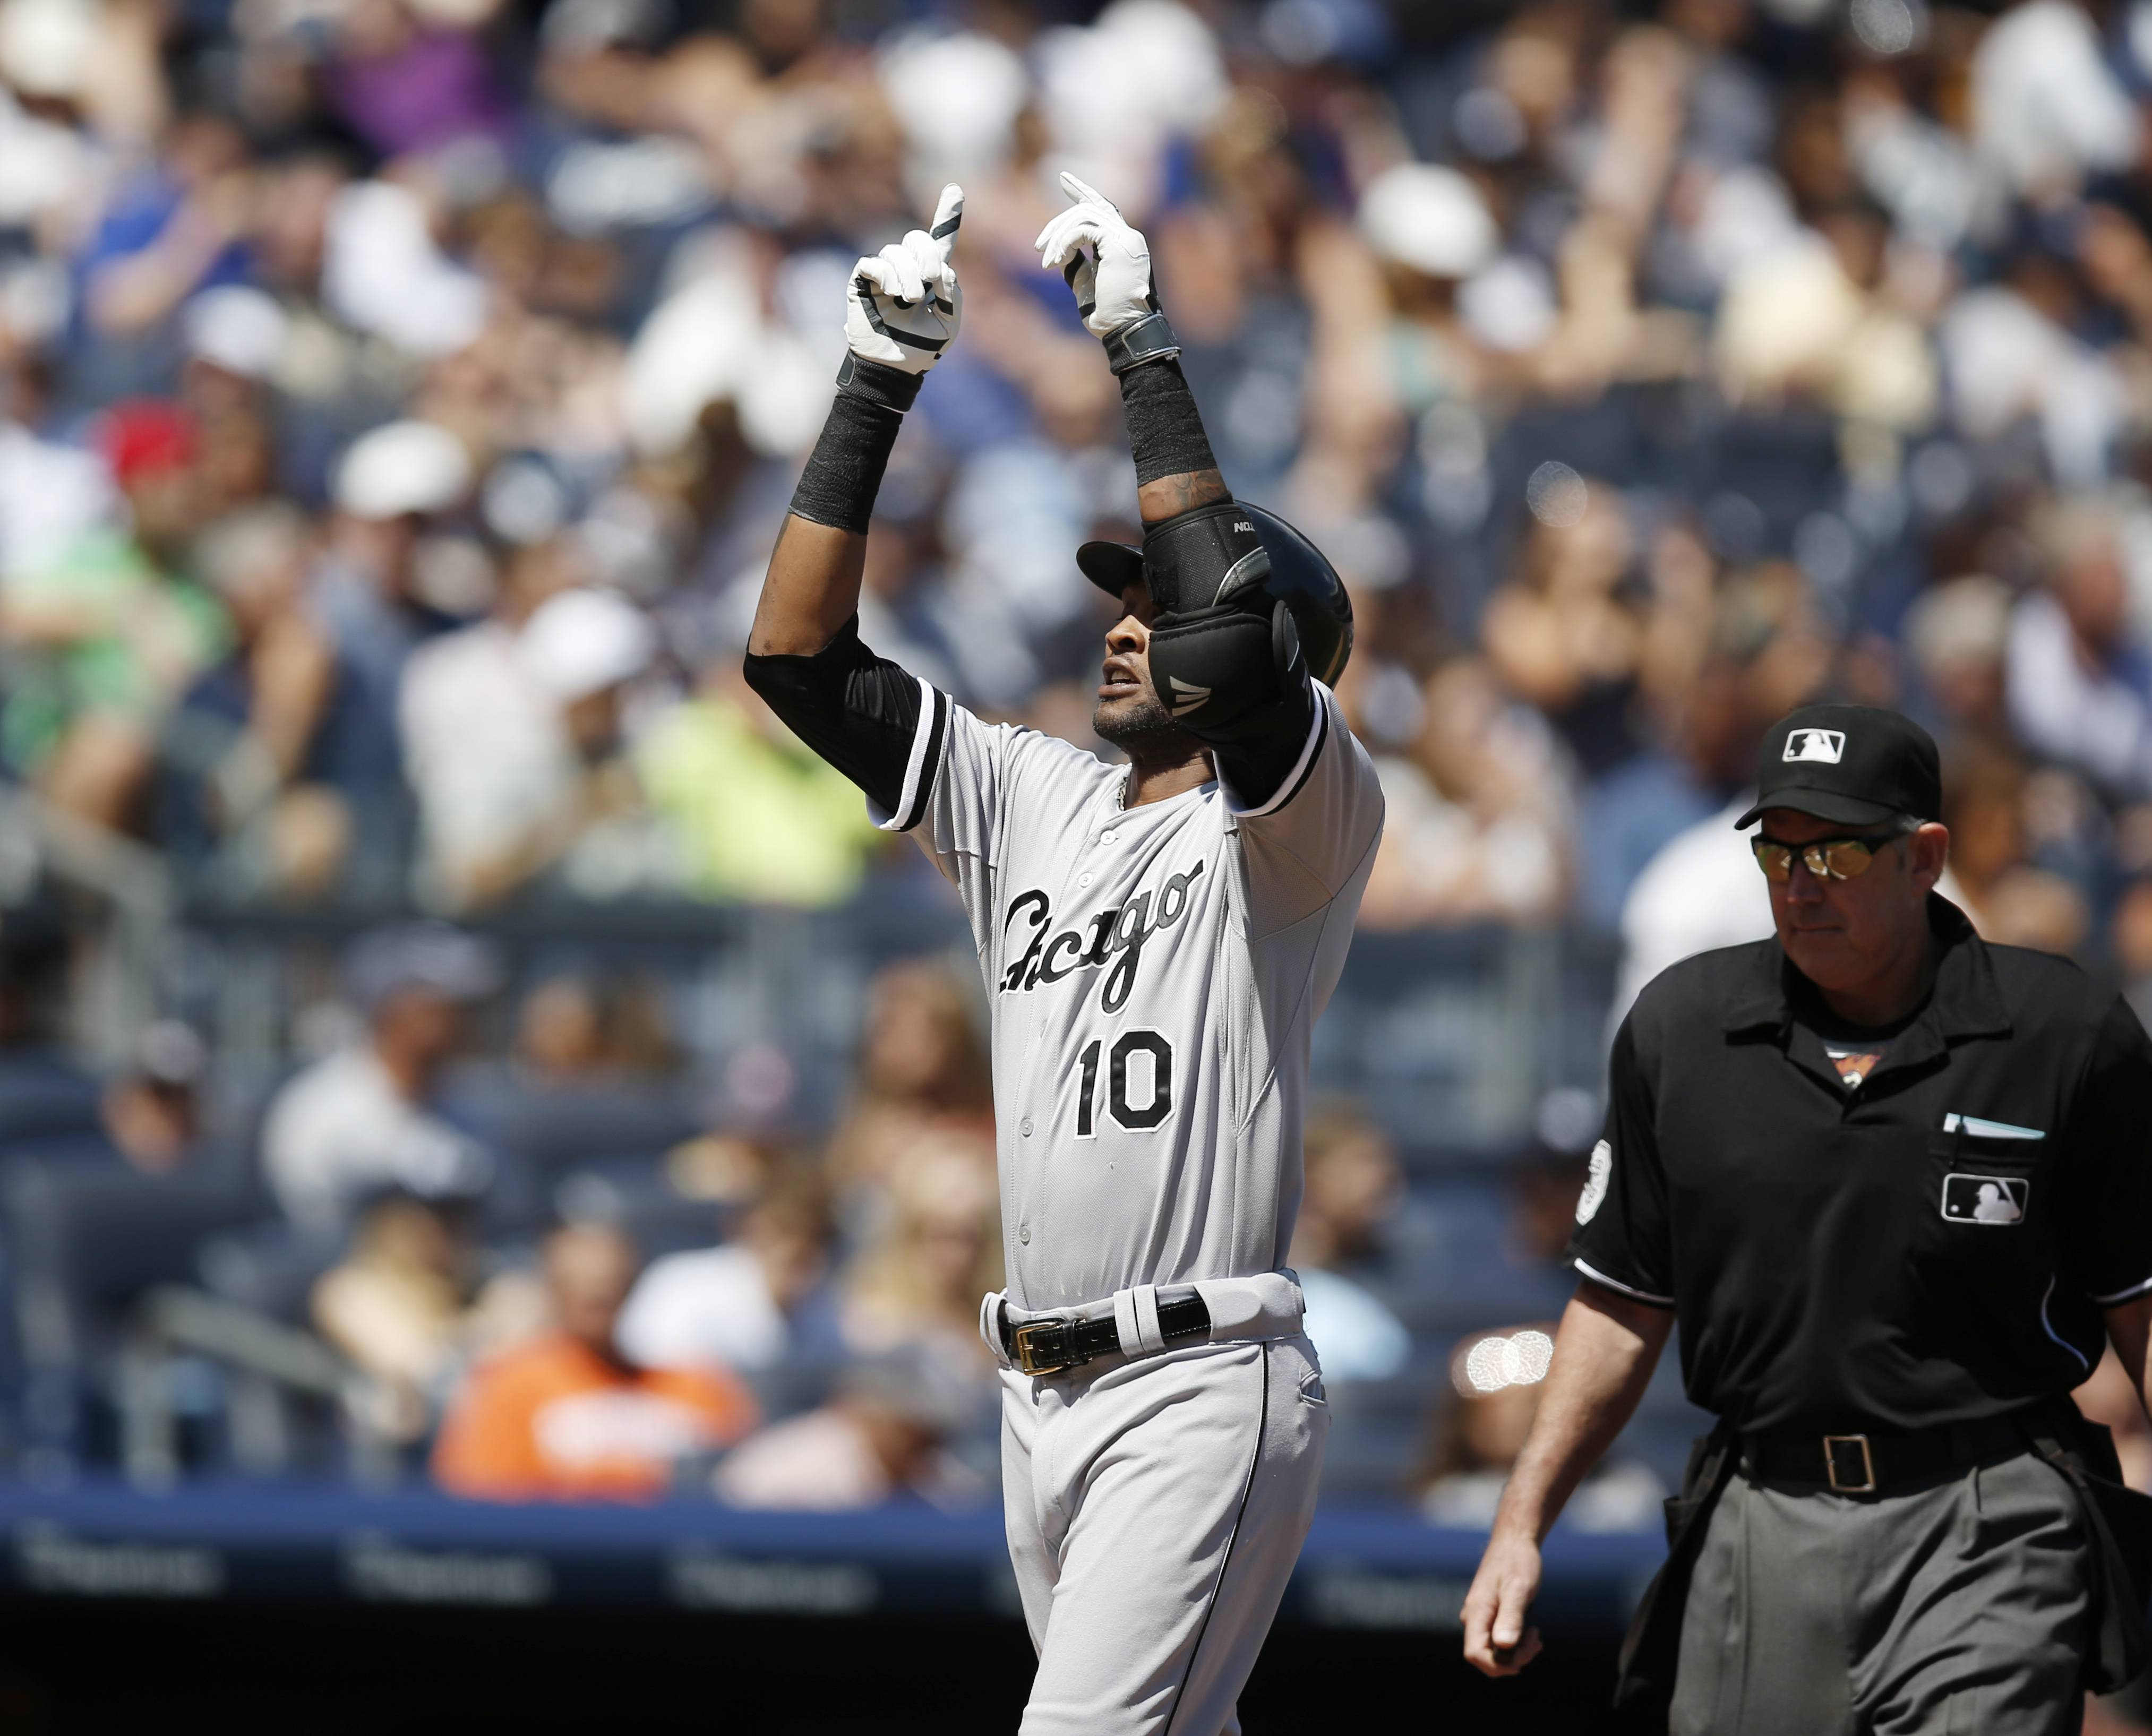 The offensive resurgence of shortstop Alexei Ramirez, who opened Sunday's game with a home run, has been a big plus for the White Sox this season.